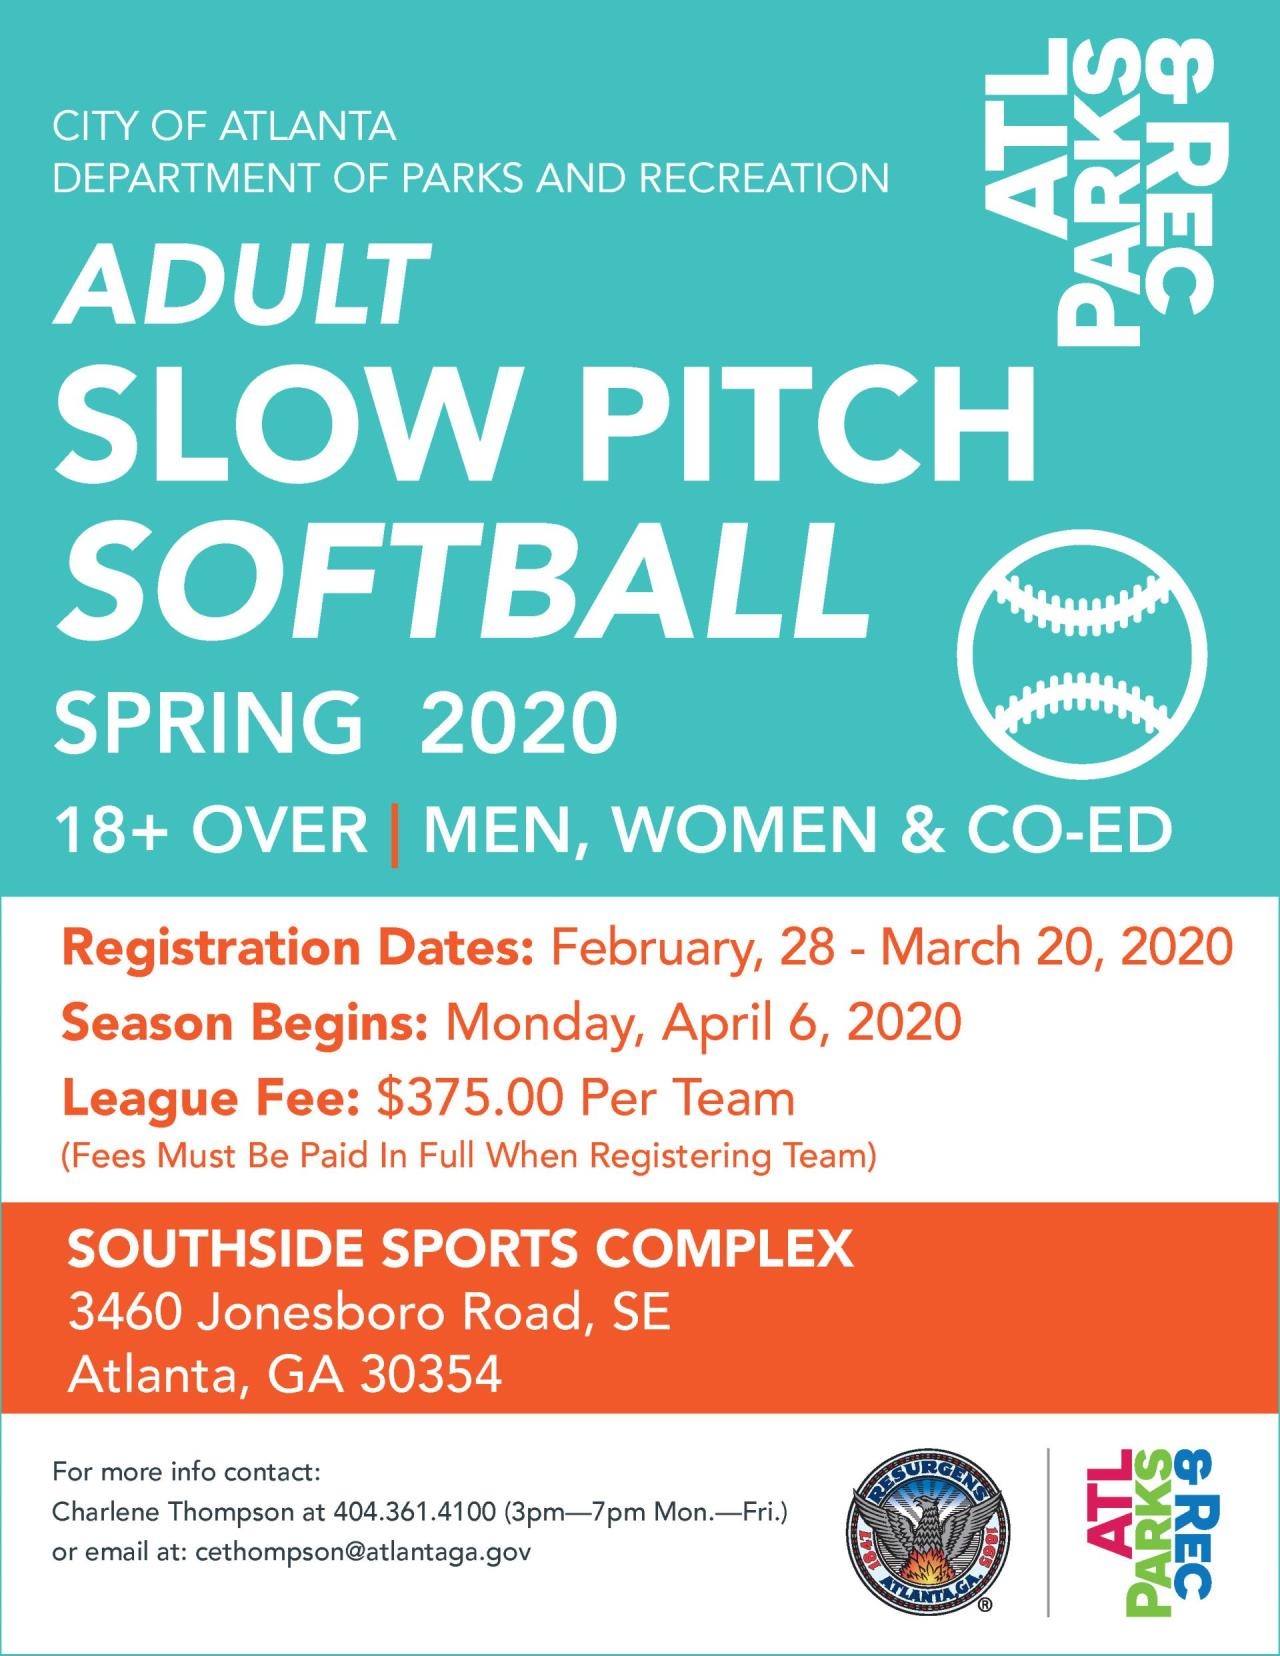 2020 Adult Slow Pitch Softball Flyer